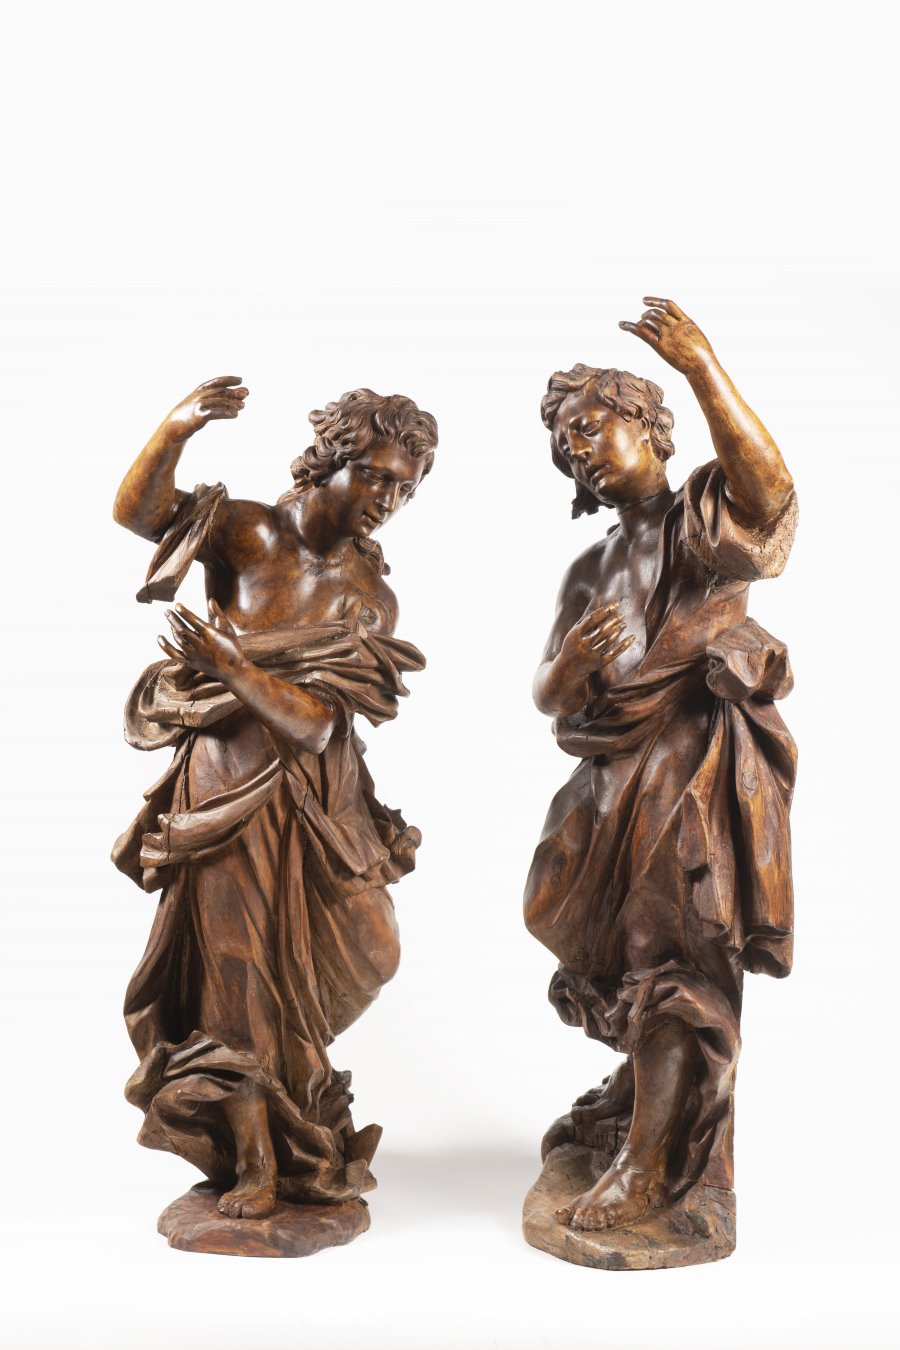 A PAIR OF WOODEN STATUES